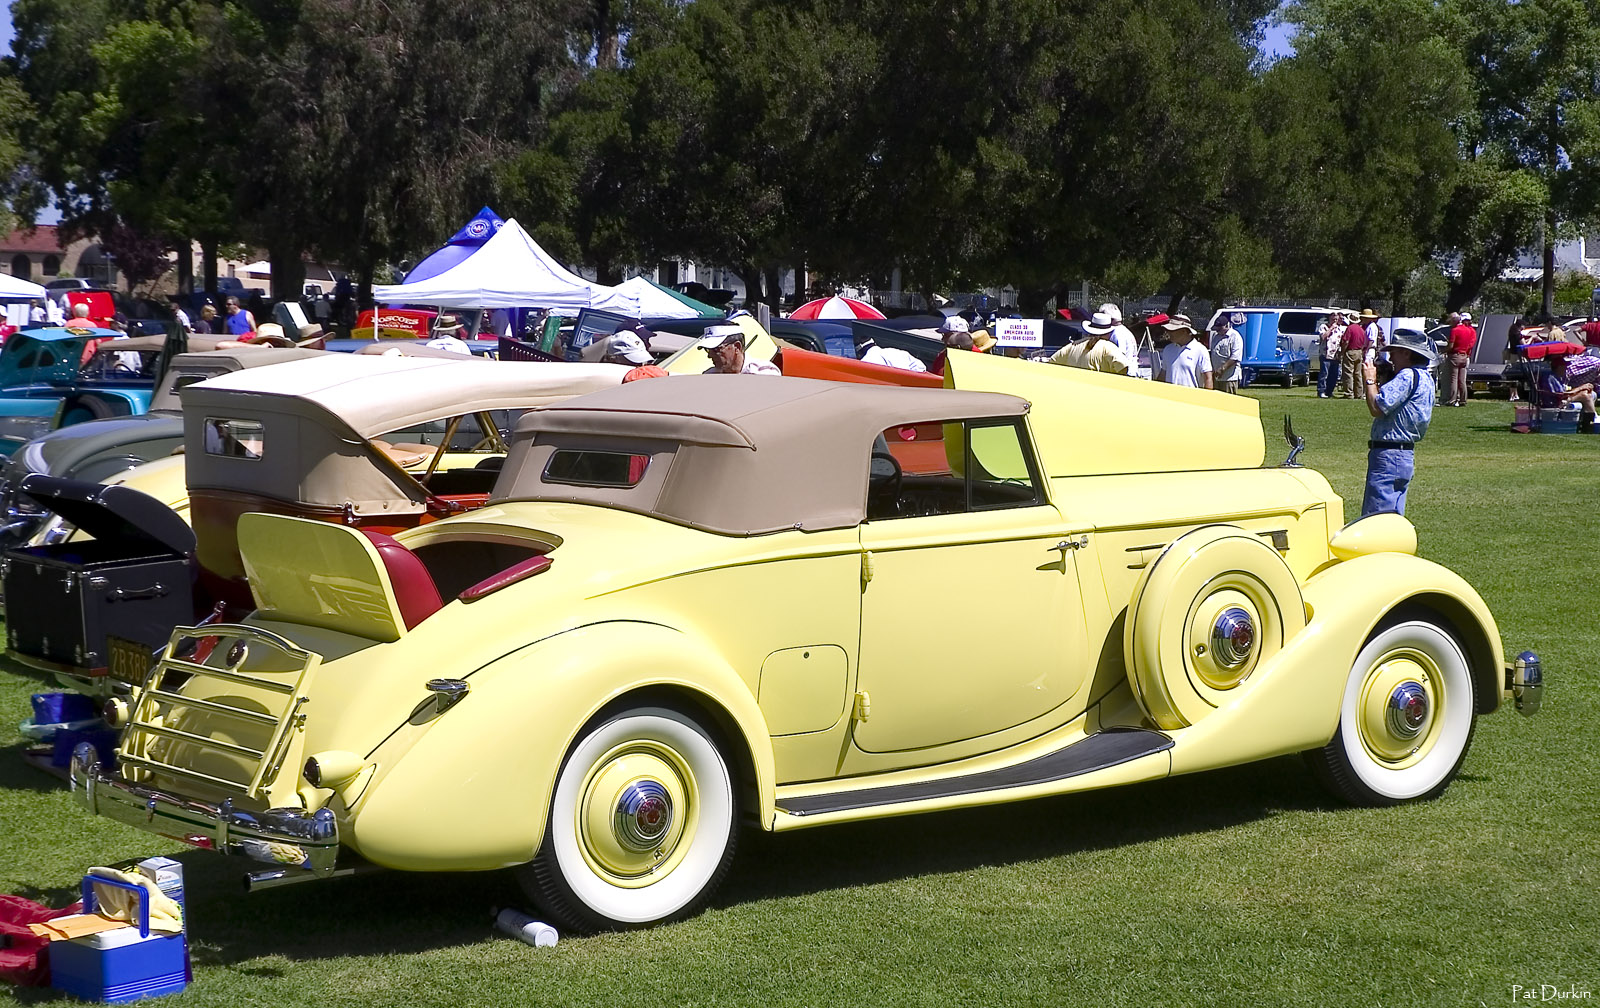 1935 Packard 1207 Convertible Coupe with top up - yellow - rvr